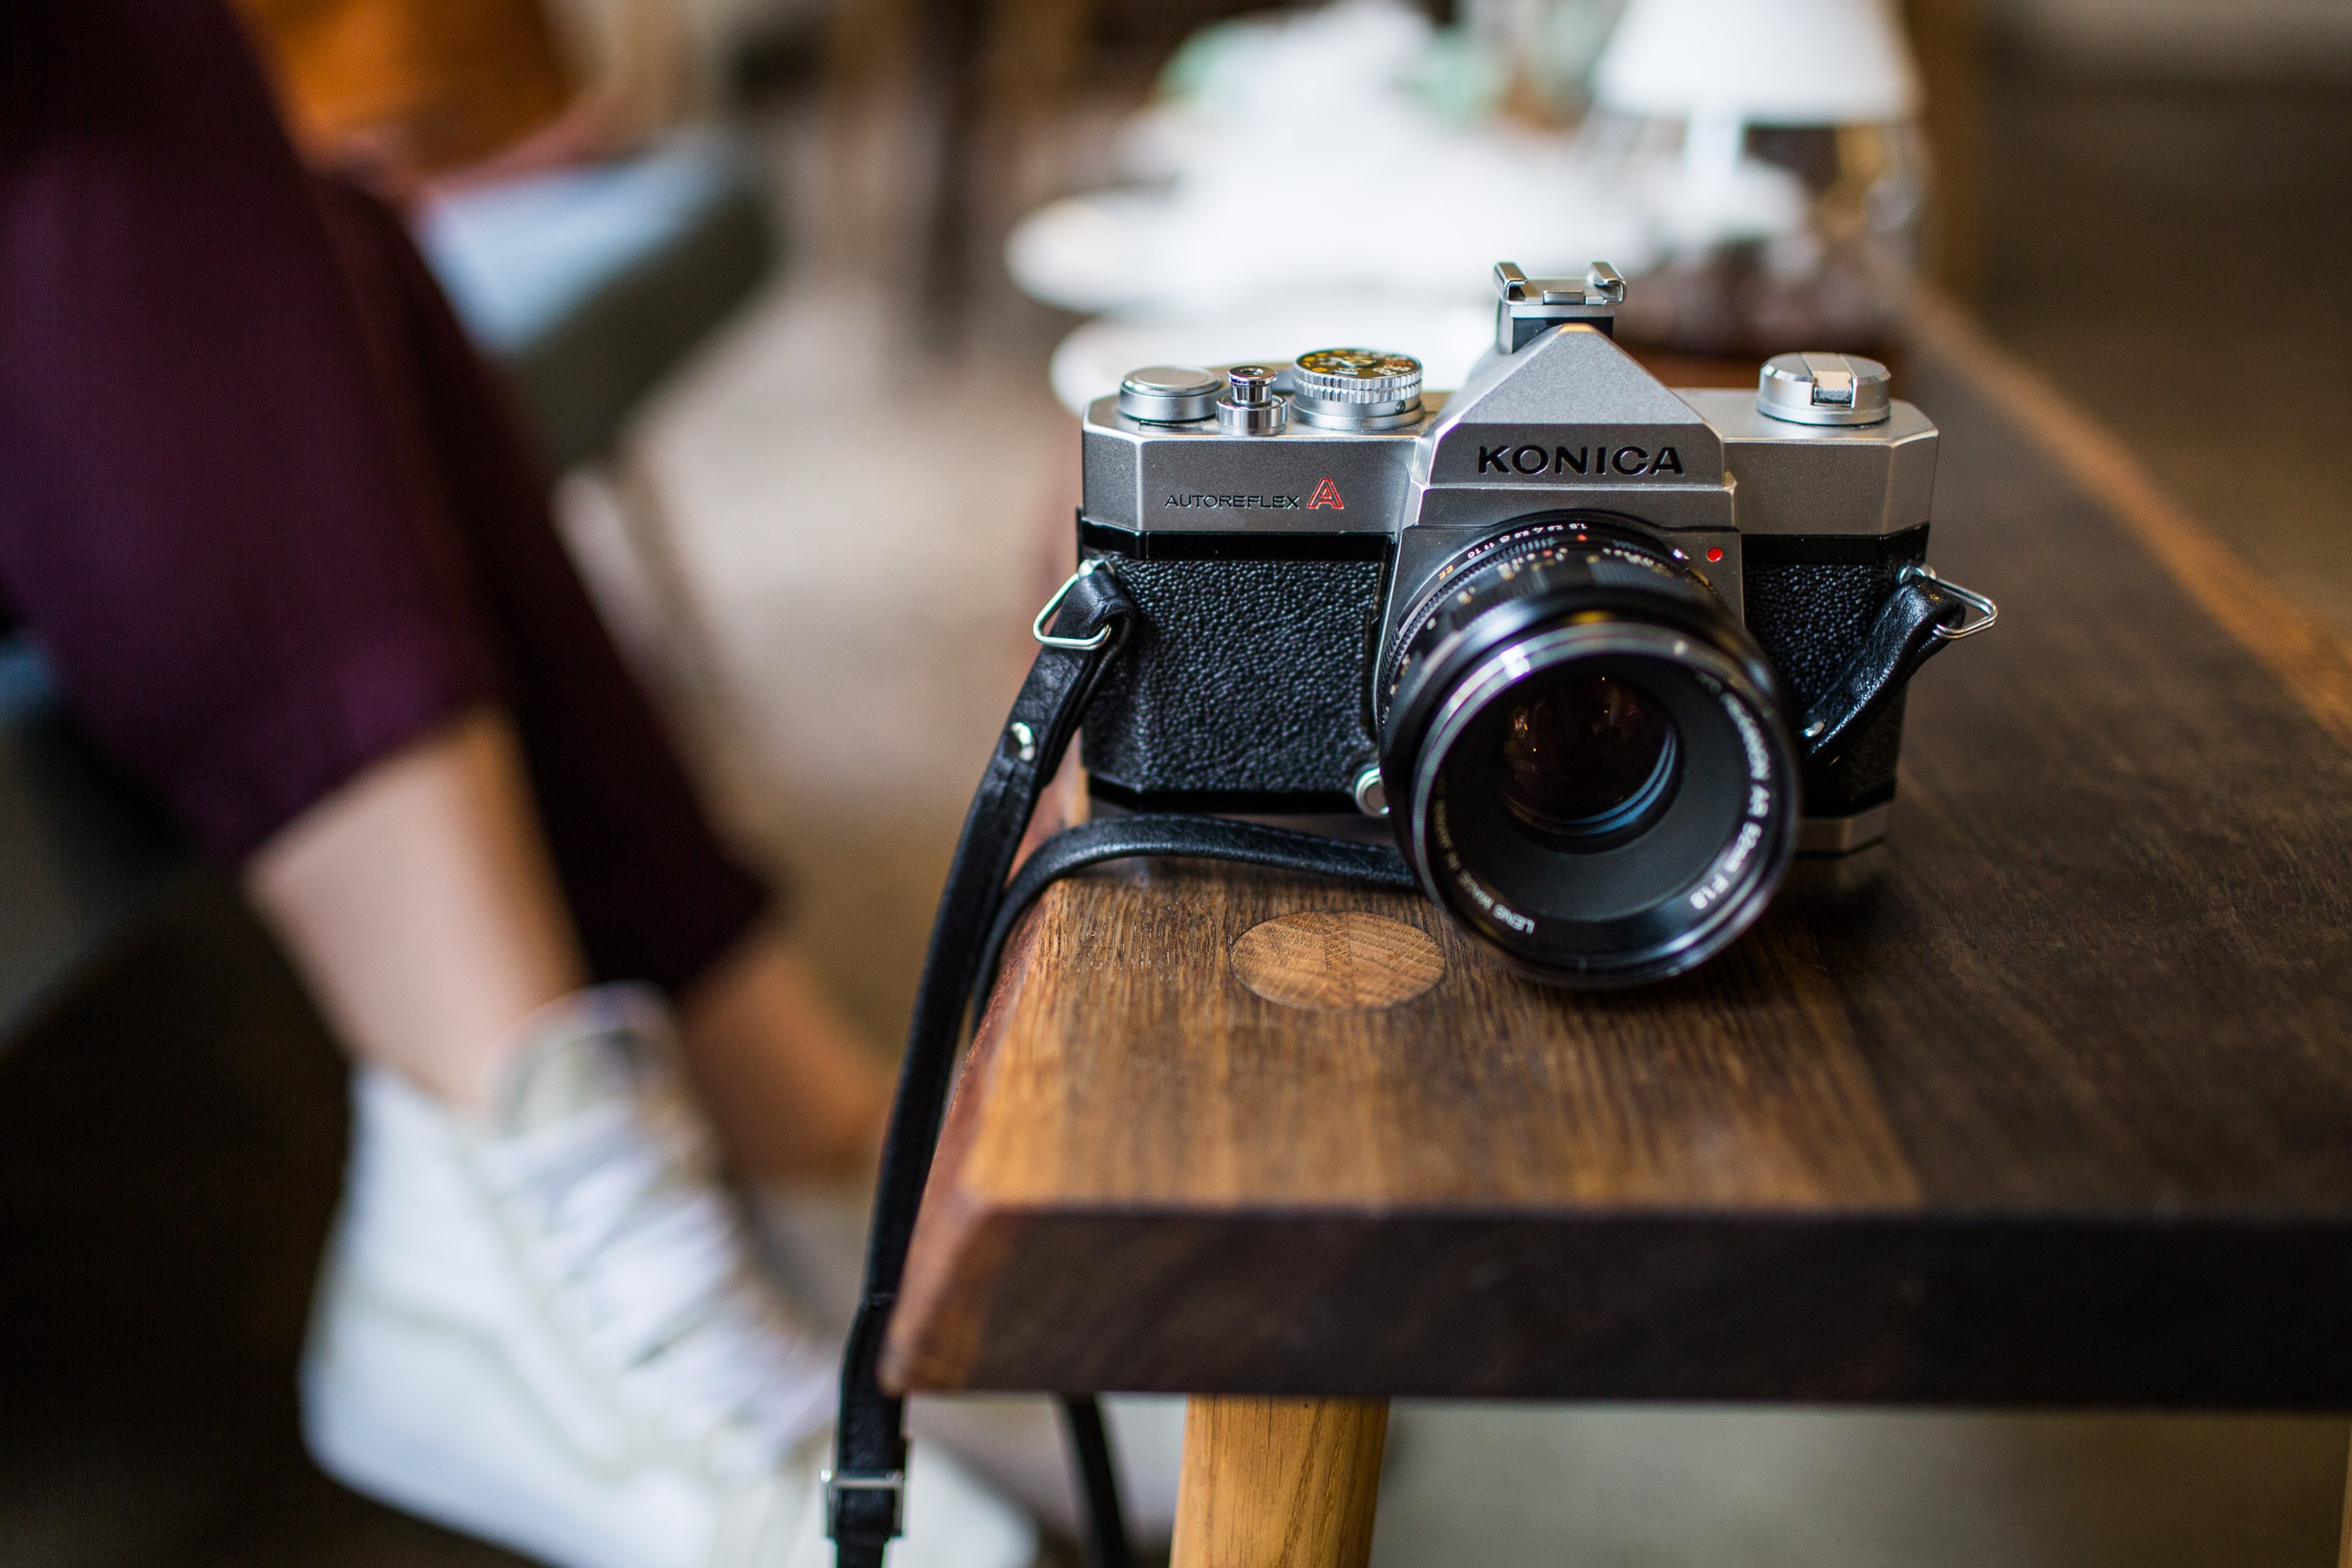 Konica Autoreflex camera on wooden table besides a woman sitting down